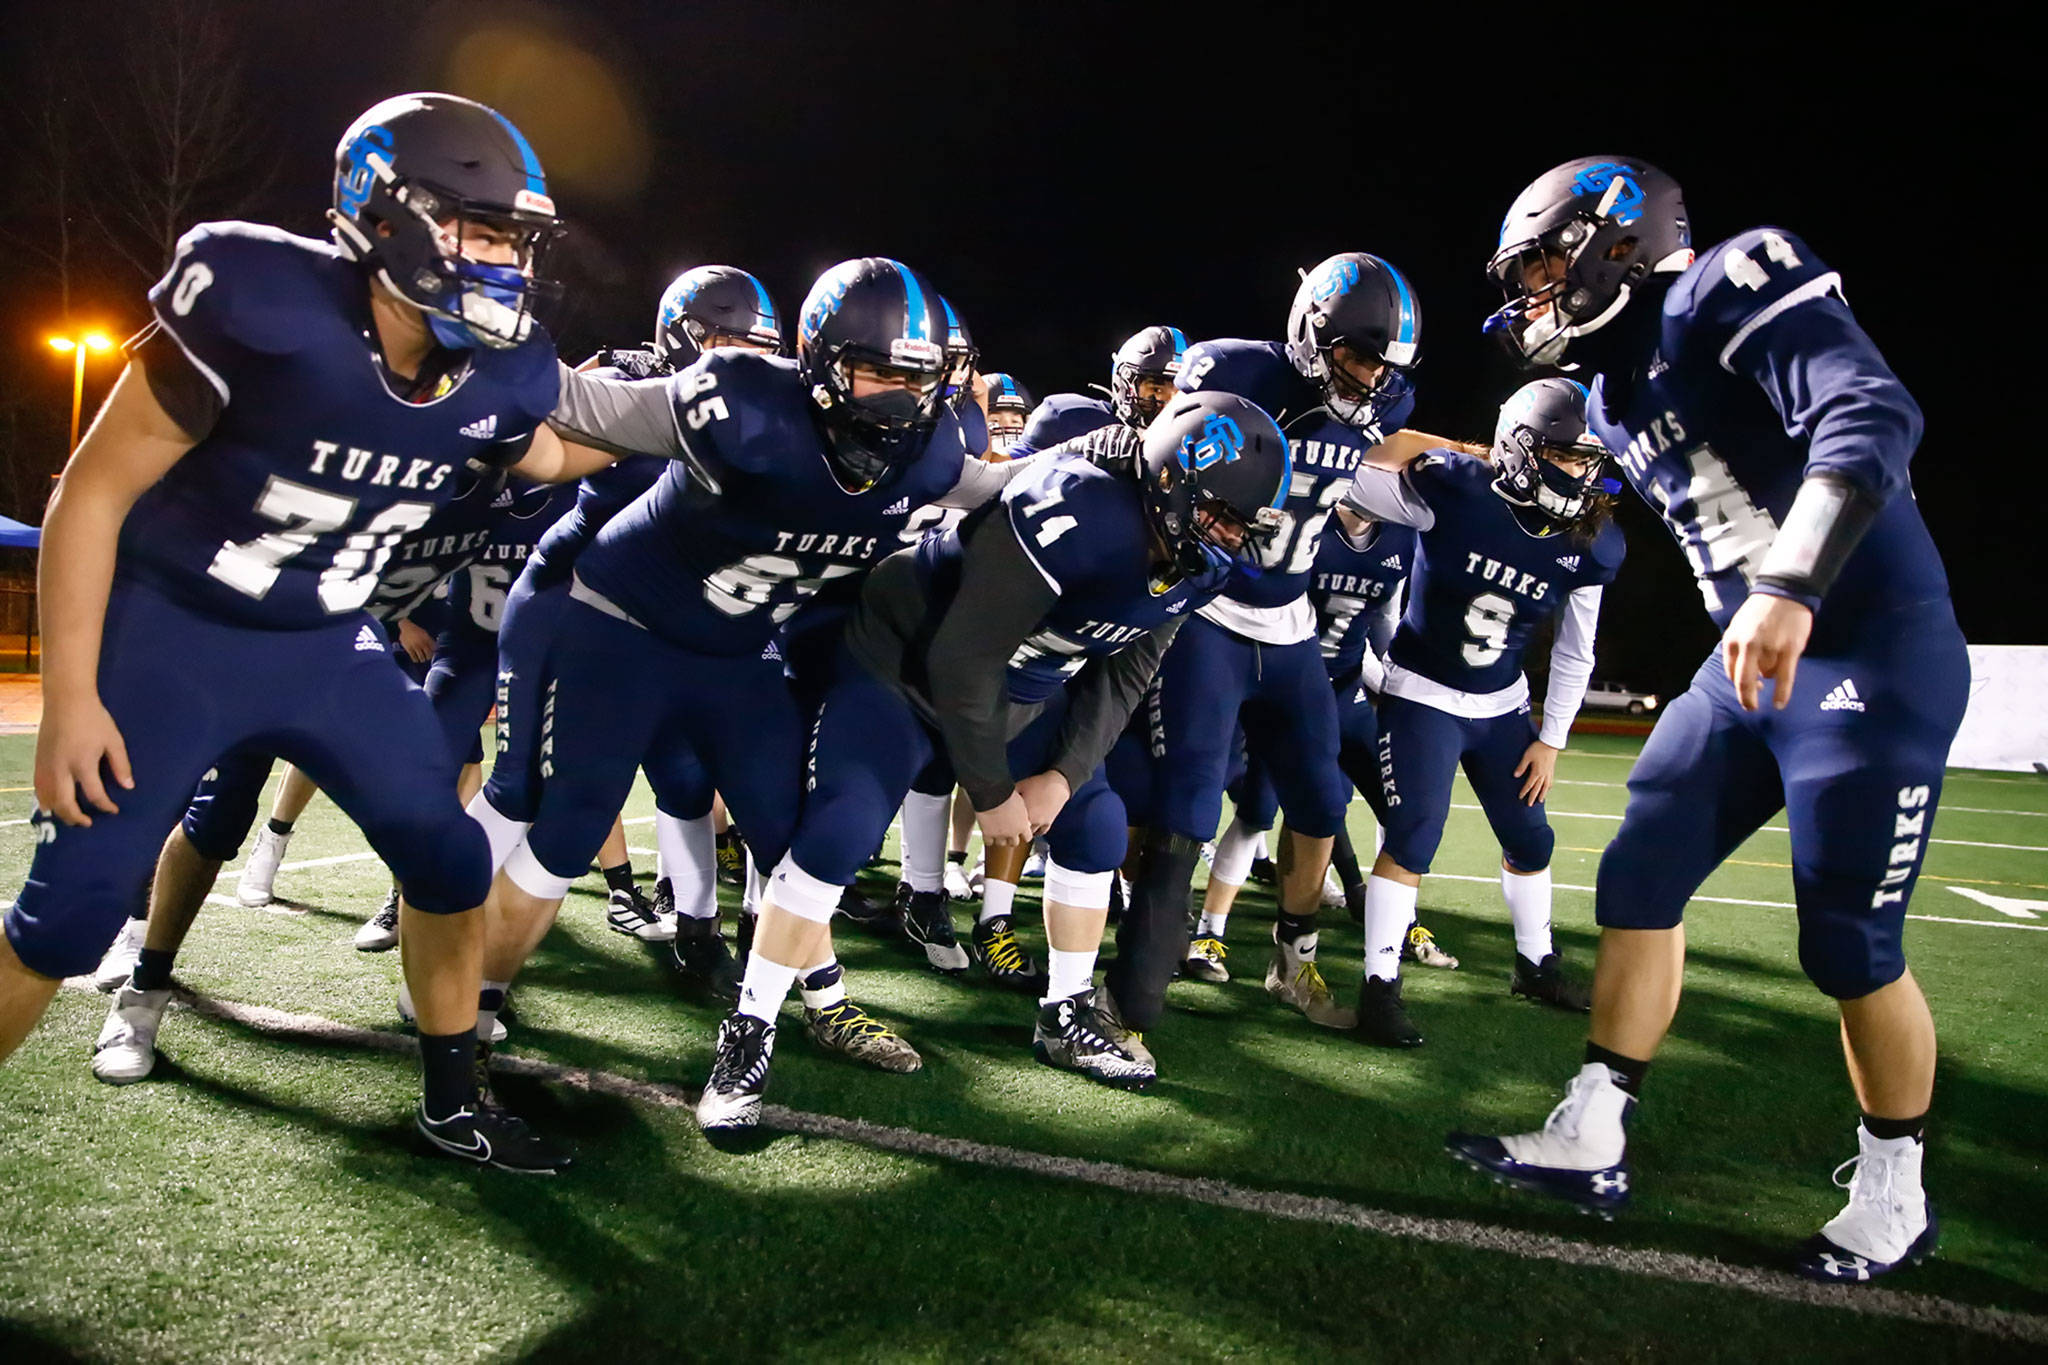 The Sultan High School football team gets fired up before its annual Black and Blue Bowl rivalry game against Granite Falls on Friday night. It marked the first Snohomish County prep football game in more than 15 months. (Kevin Clark / The Herald)